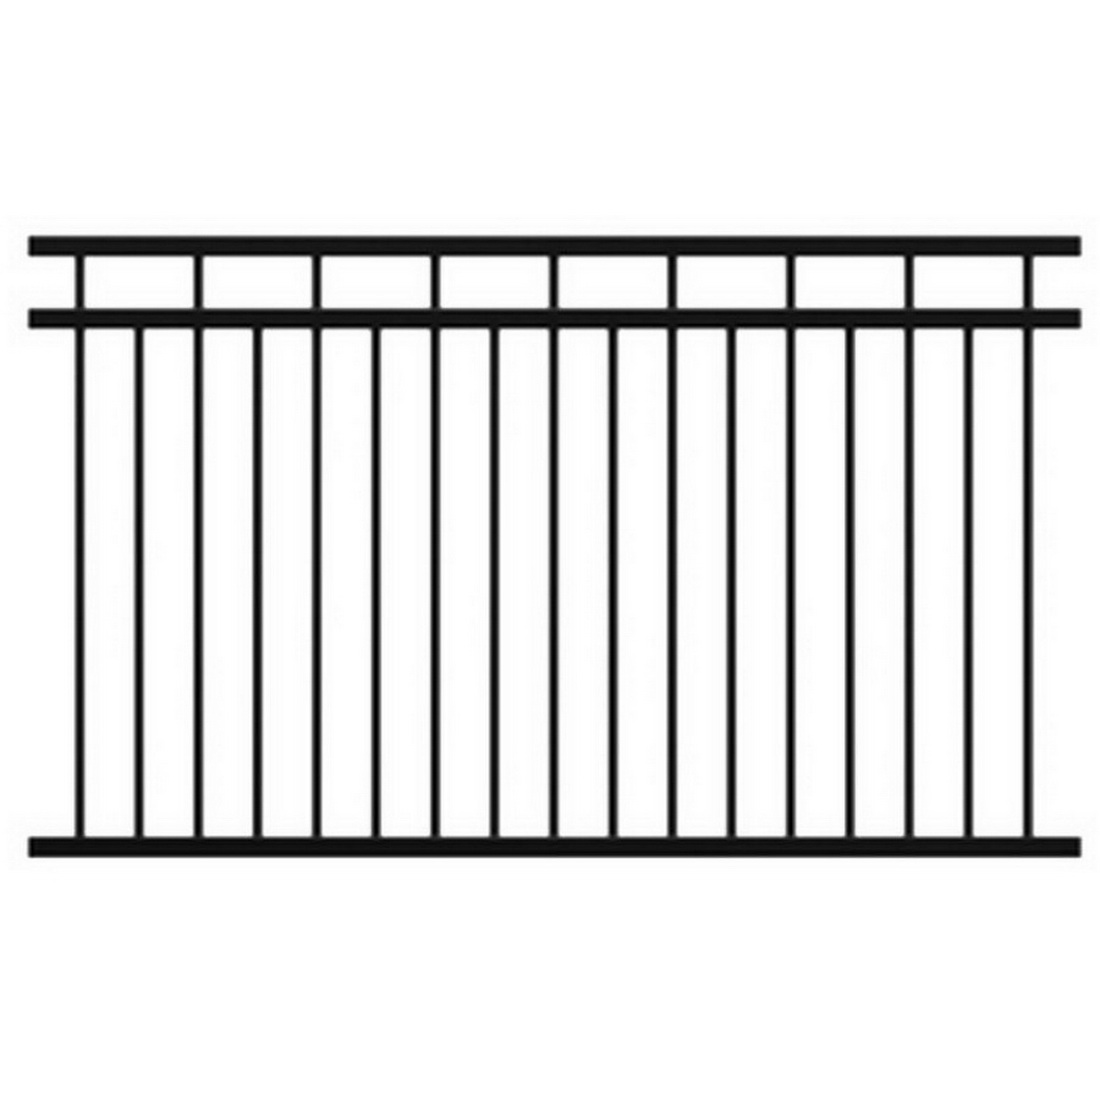 Mansion 1500H Fencing Panel 1500 x 2250mm Powder Coat Aluminum FAMFP1522